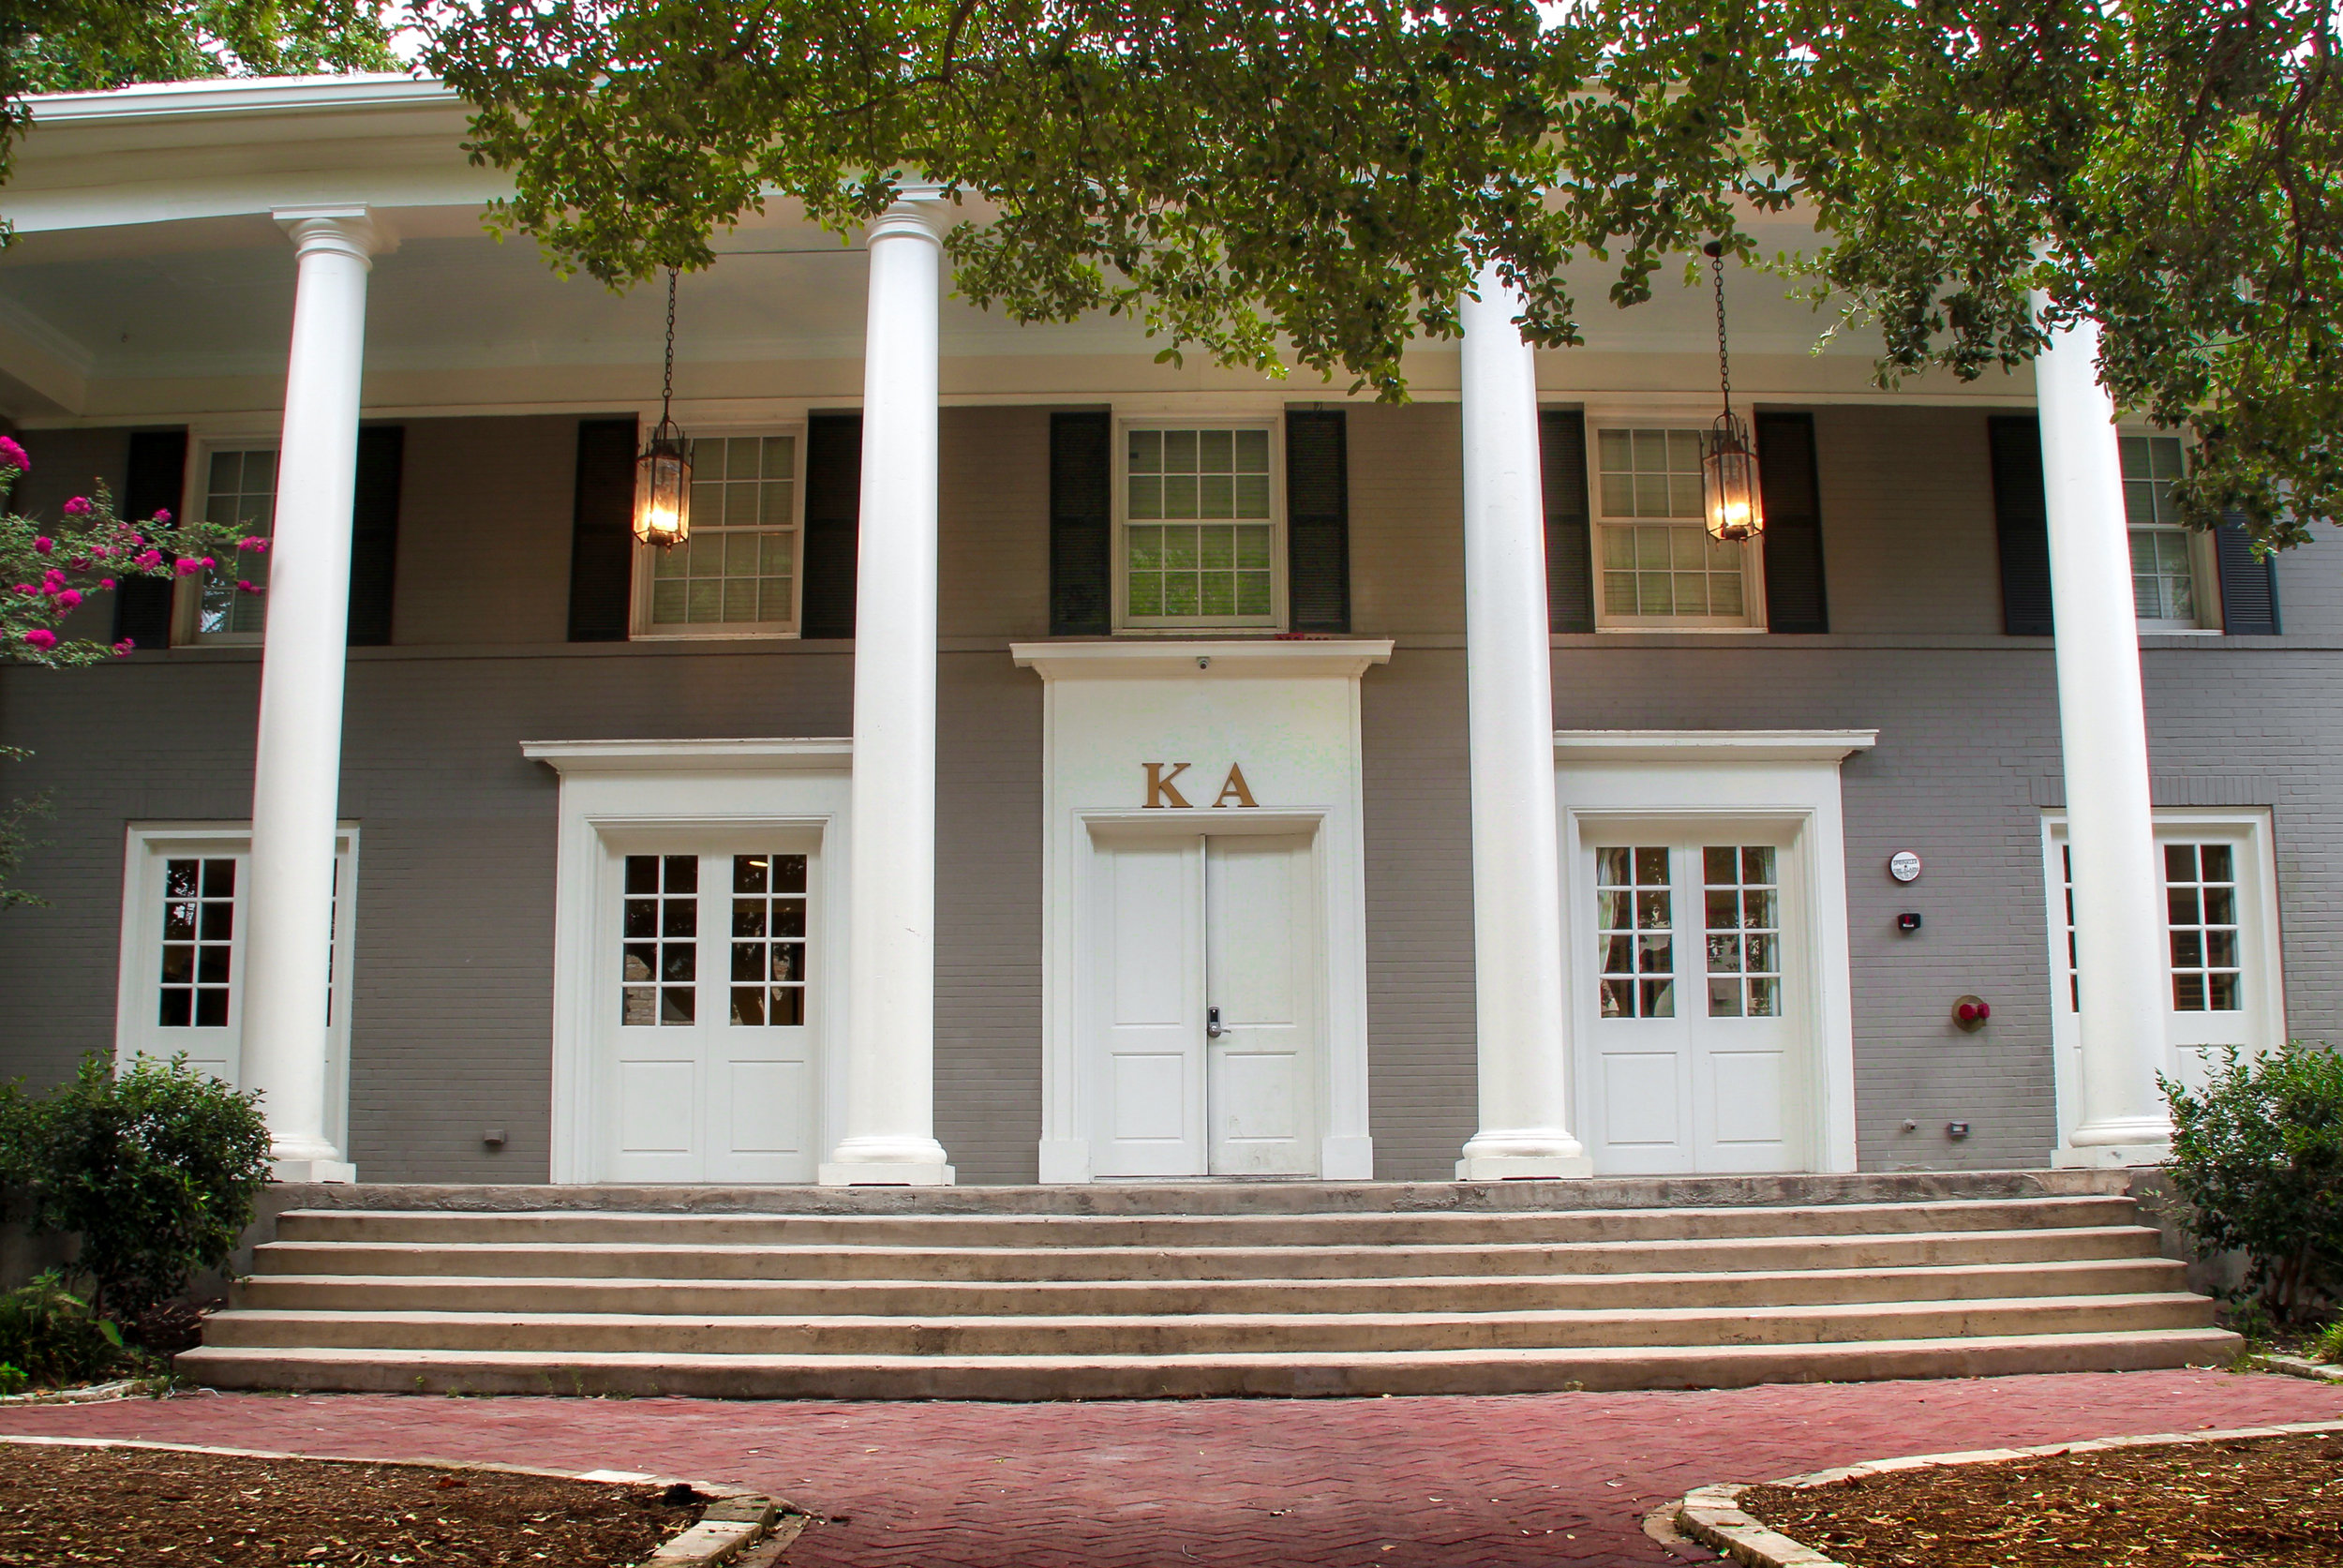 Join the $2.25 Million Campaign! - We are excited to be working with Pennington & Co., the Recognized Leader in Fraternity and Sorority Fundrasing. Learn more about Pennington here.